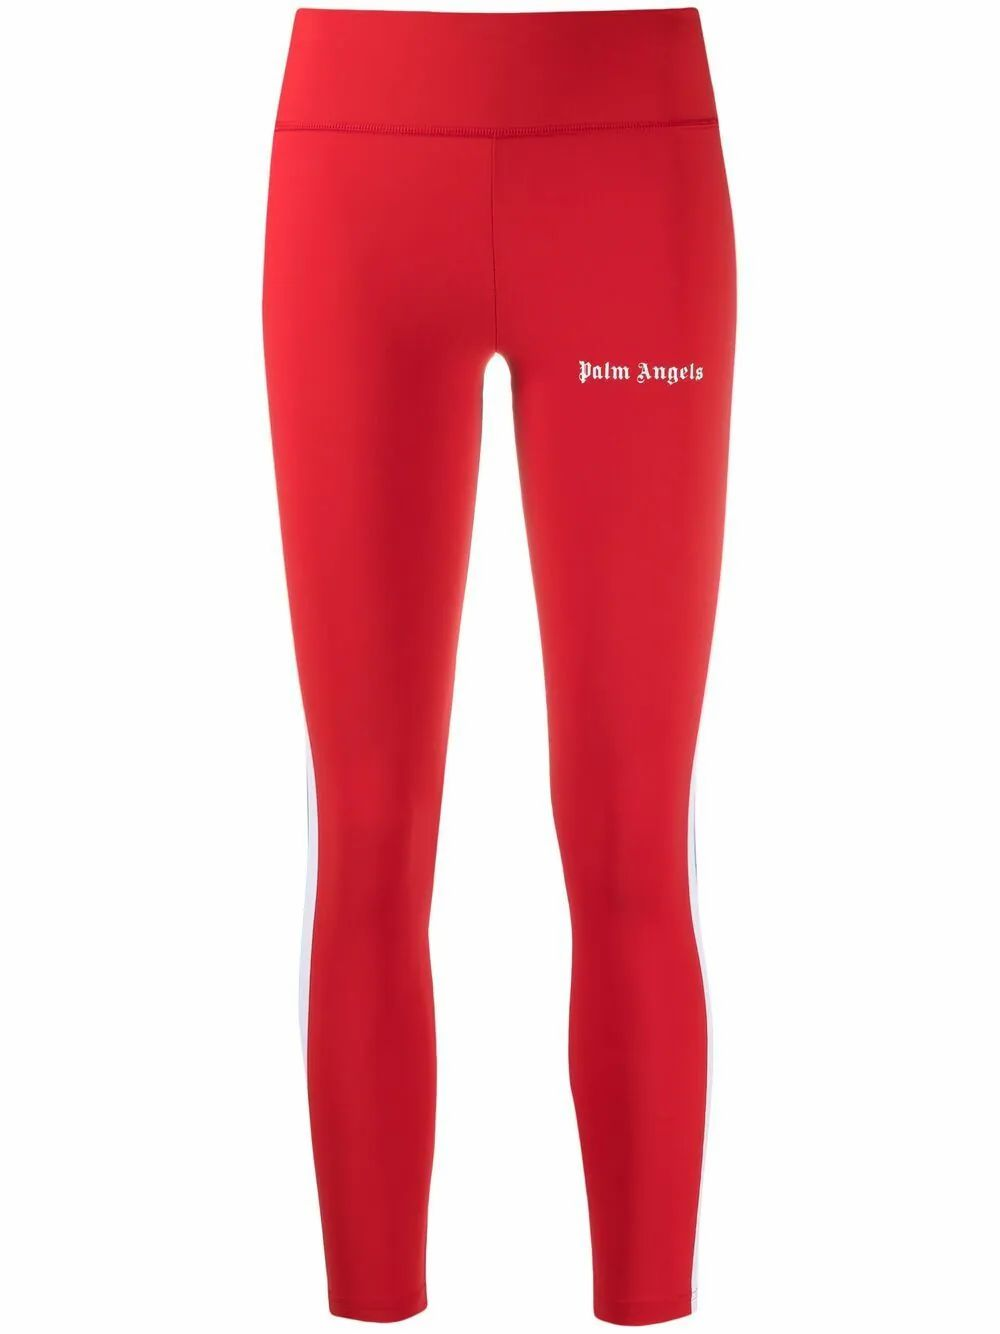 Palm Angels PALM ANGELS WOMEN'S RED POLYAMIDE LEGGINGS